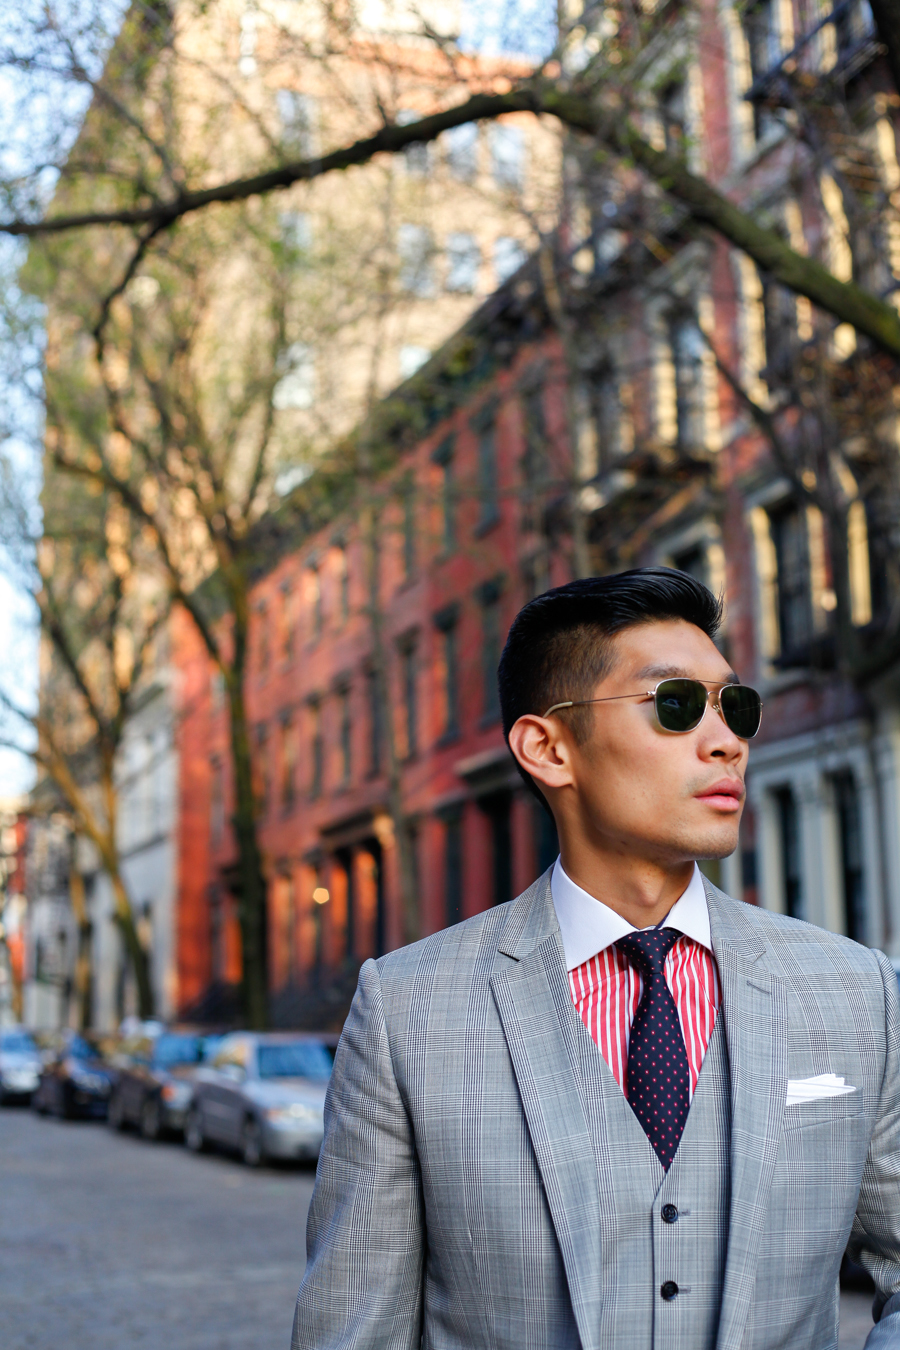 Levitate Style - American Classic, Express Three Piece Suit Two Looks |  J.J. Threads, Allen Edmonds, Filson Briefcase, Daniel Wellington